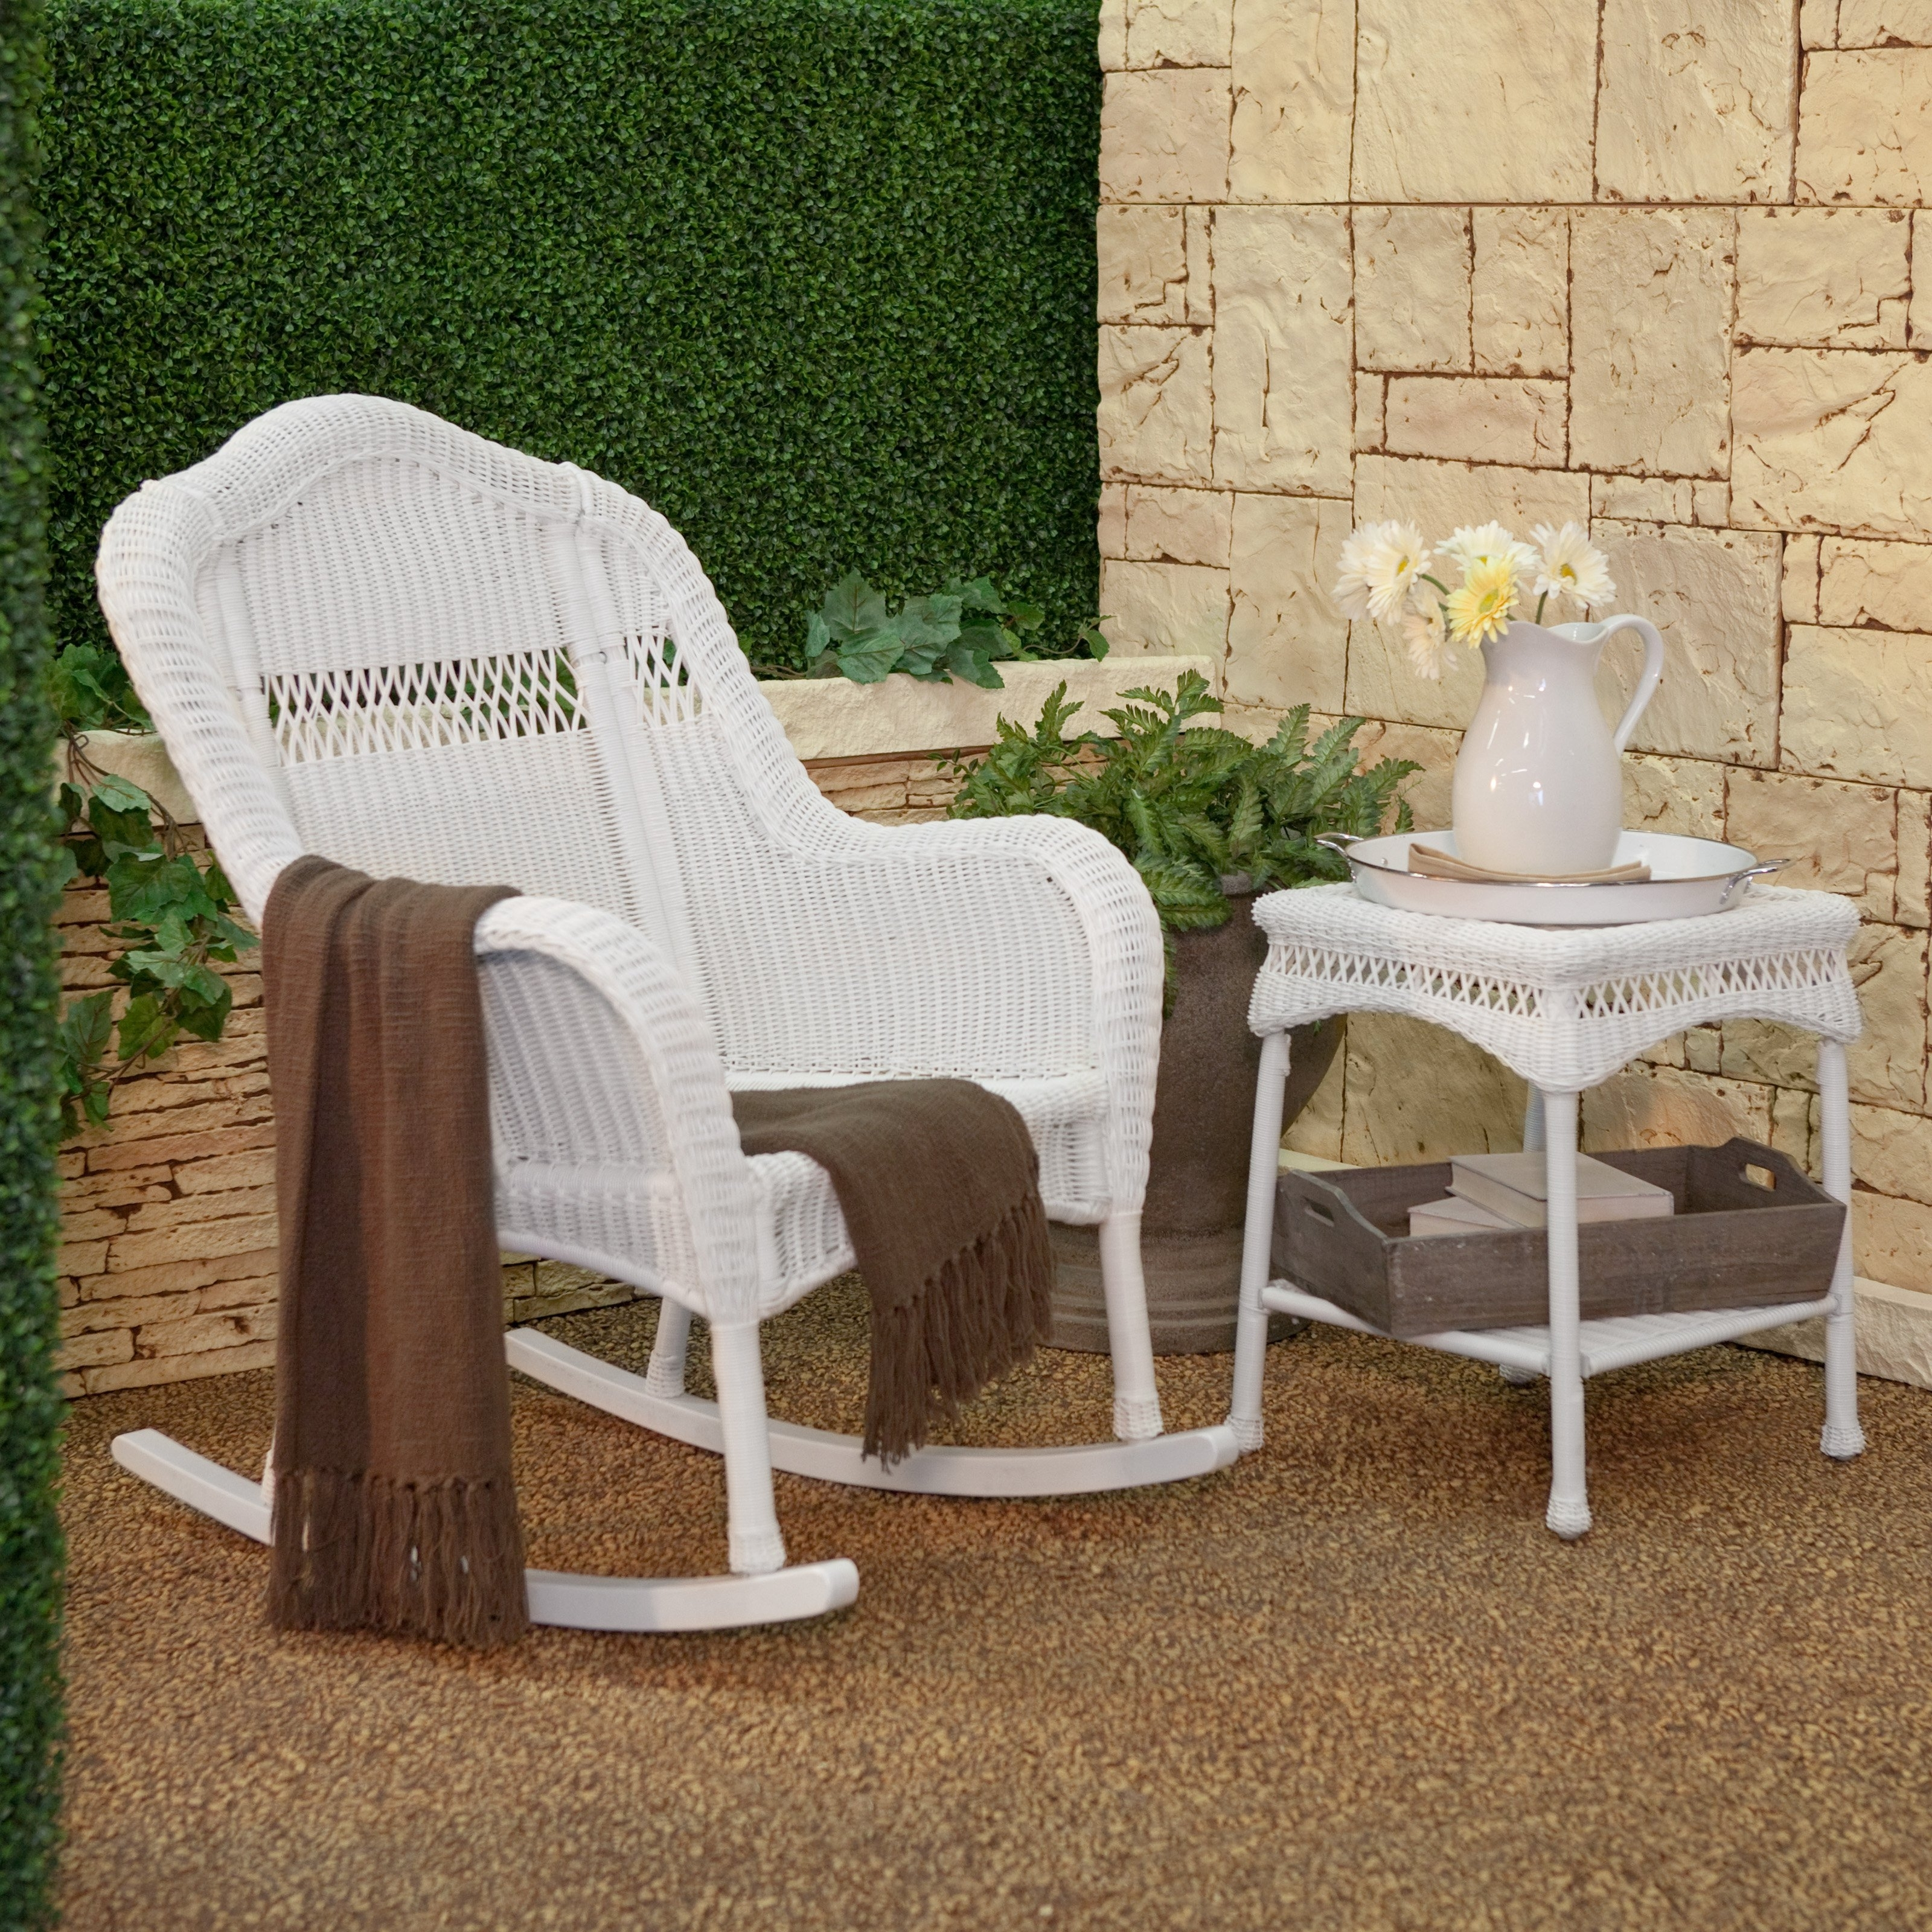 Outdoor Wicker Rocking Chairs With Cushions With Favorite Coral Coast Casco Bay Resin Wicker Rocking Chair With Cushion Option (View 15 of 20)